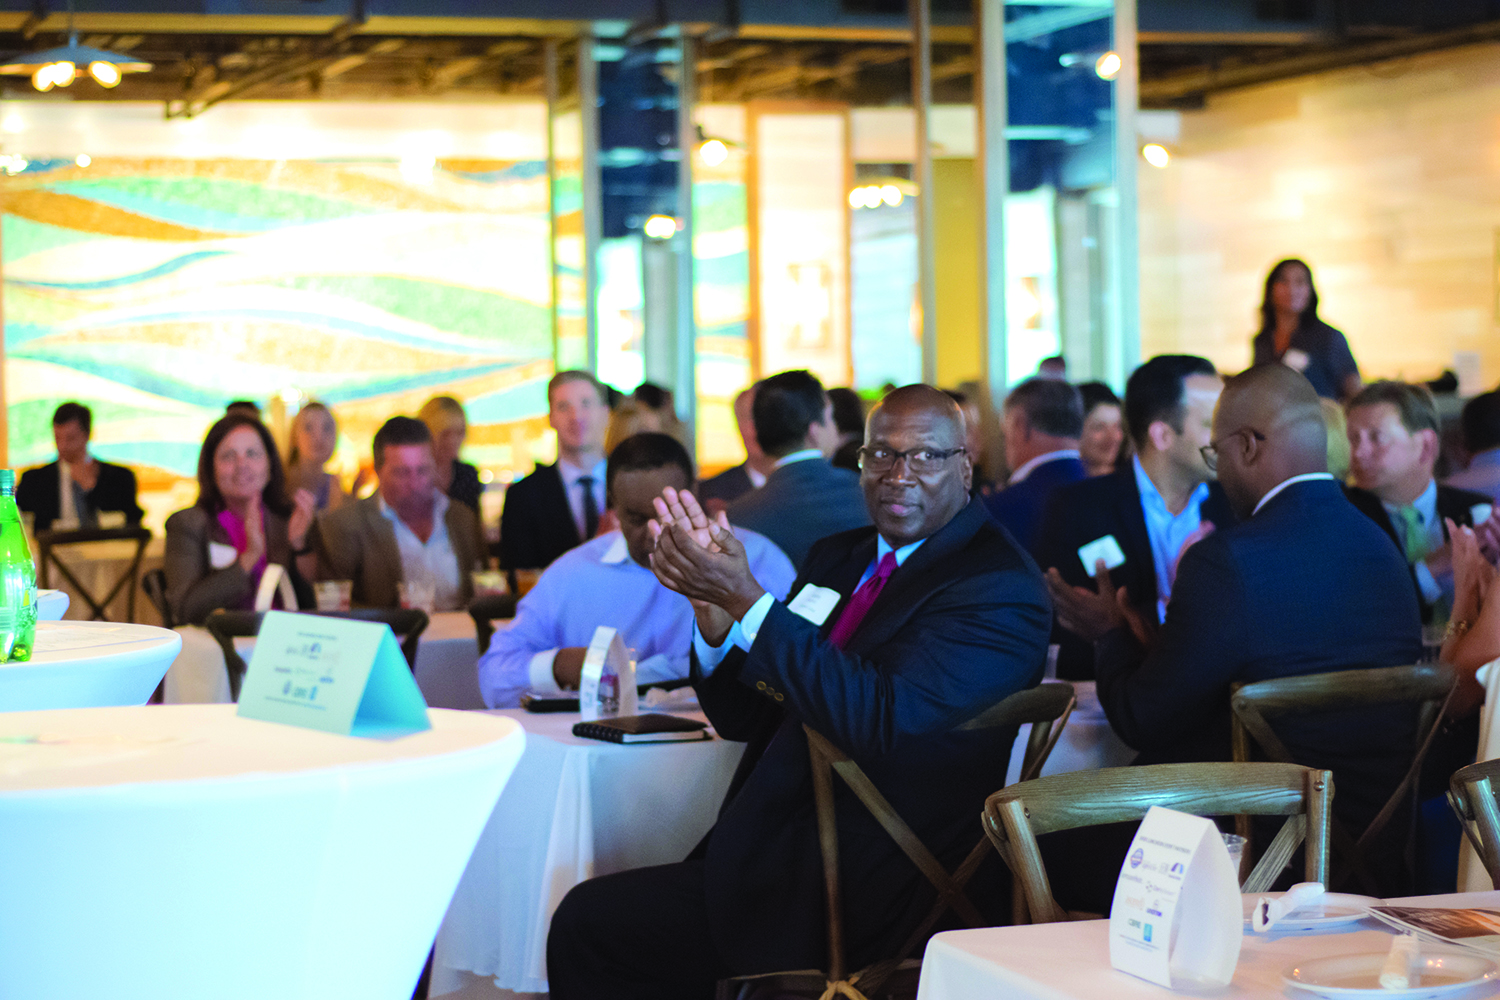 Members of the audience applaud during South Florida Executive Roundtable's presentation